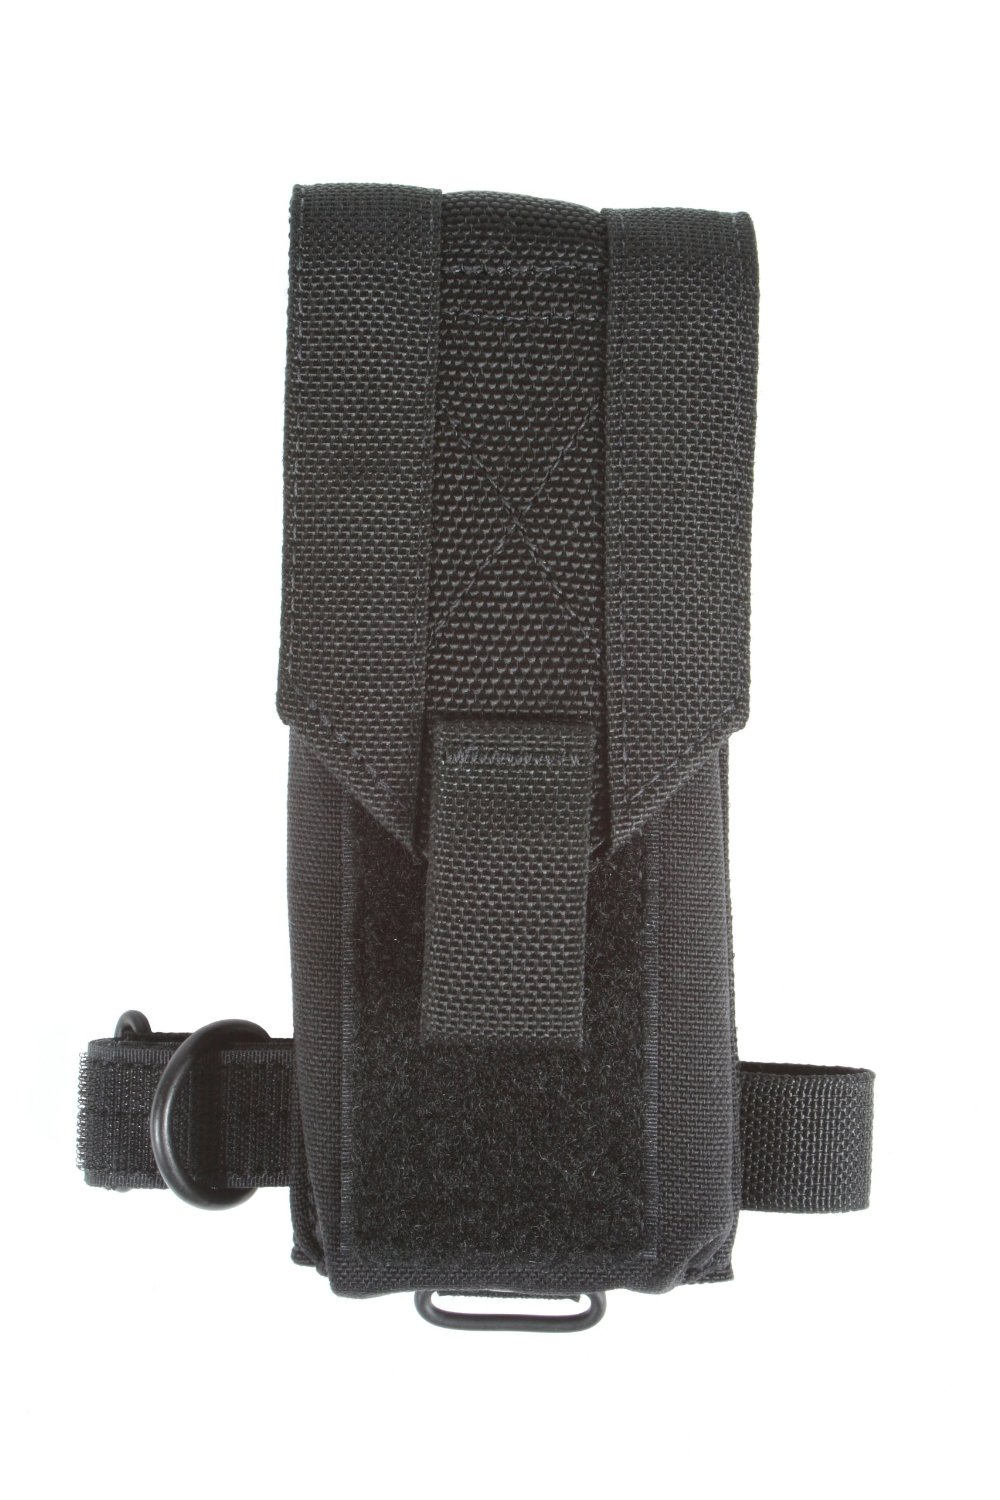 Ready-Fire MODE M4 Buttstock Ammo Pouch